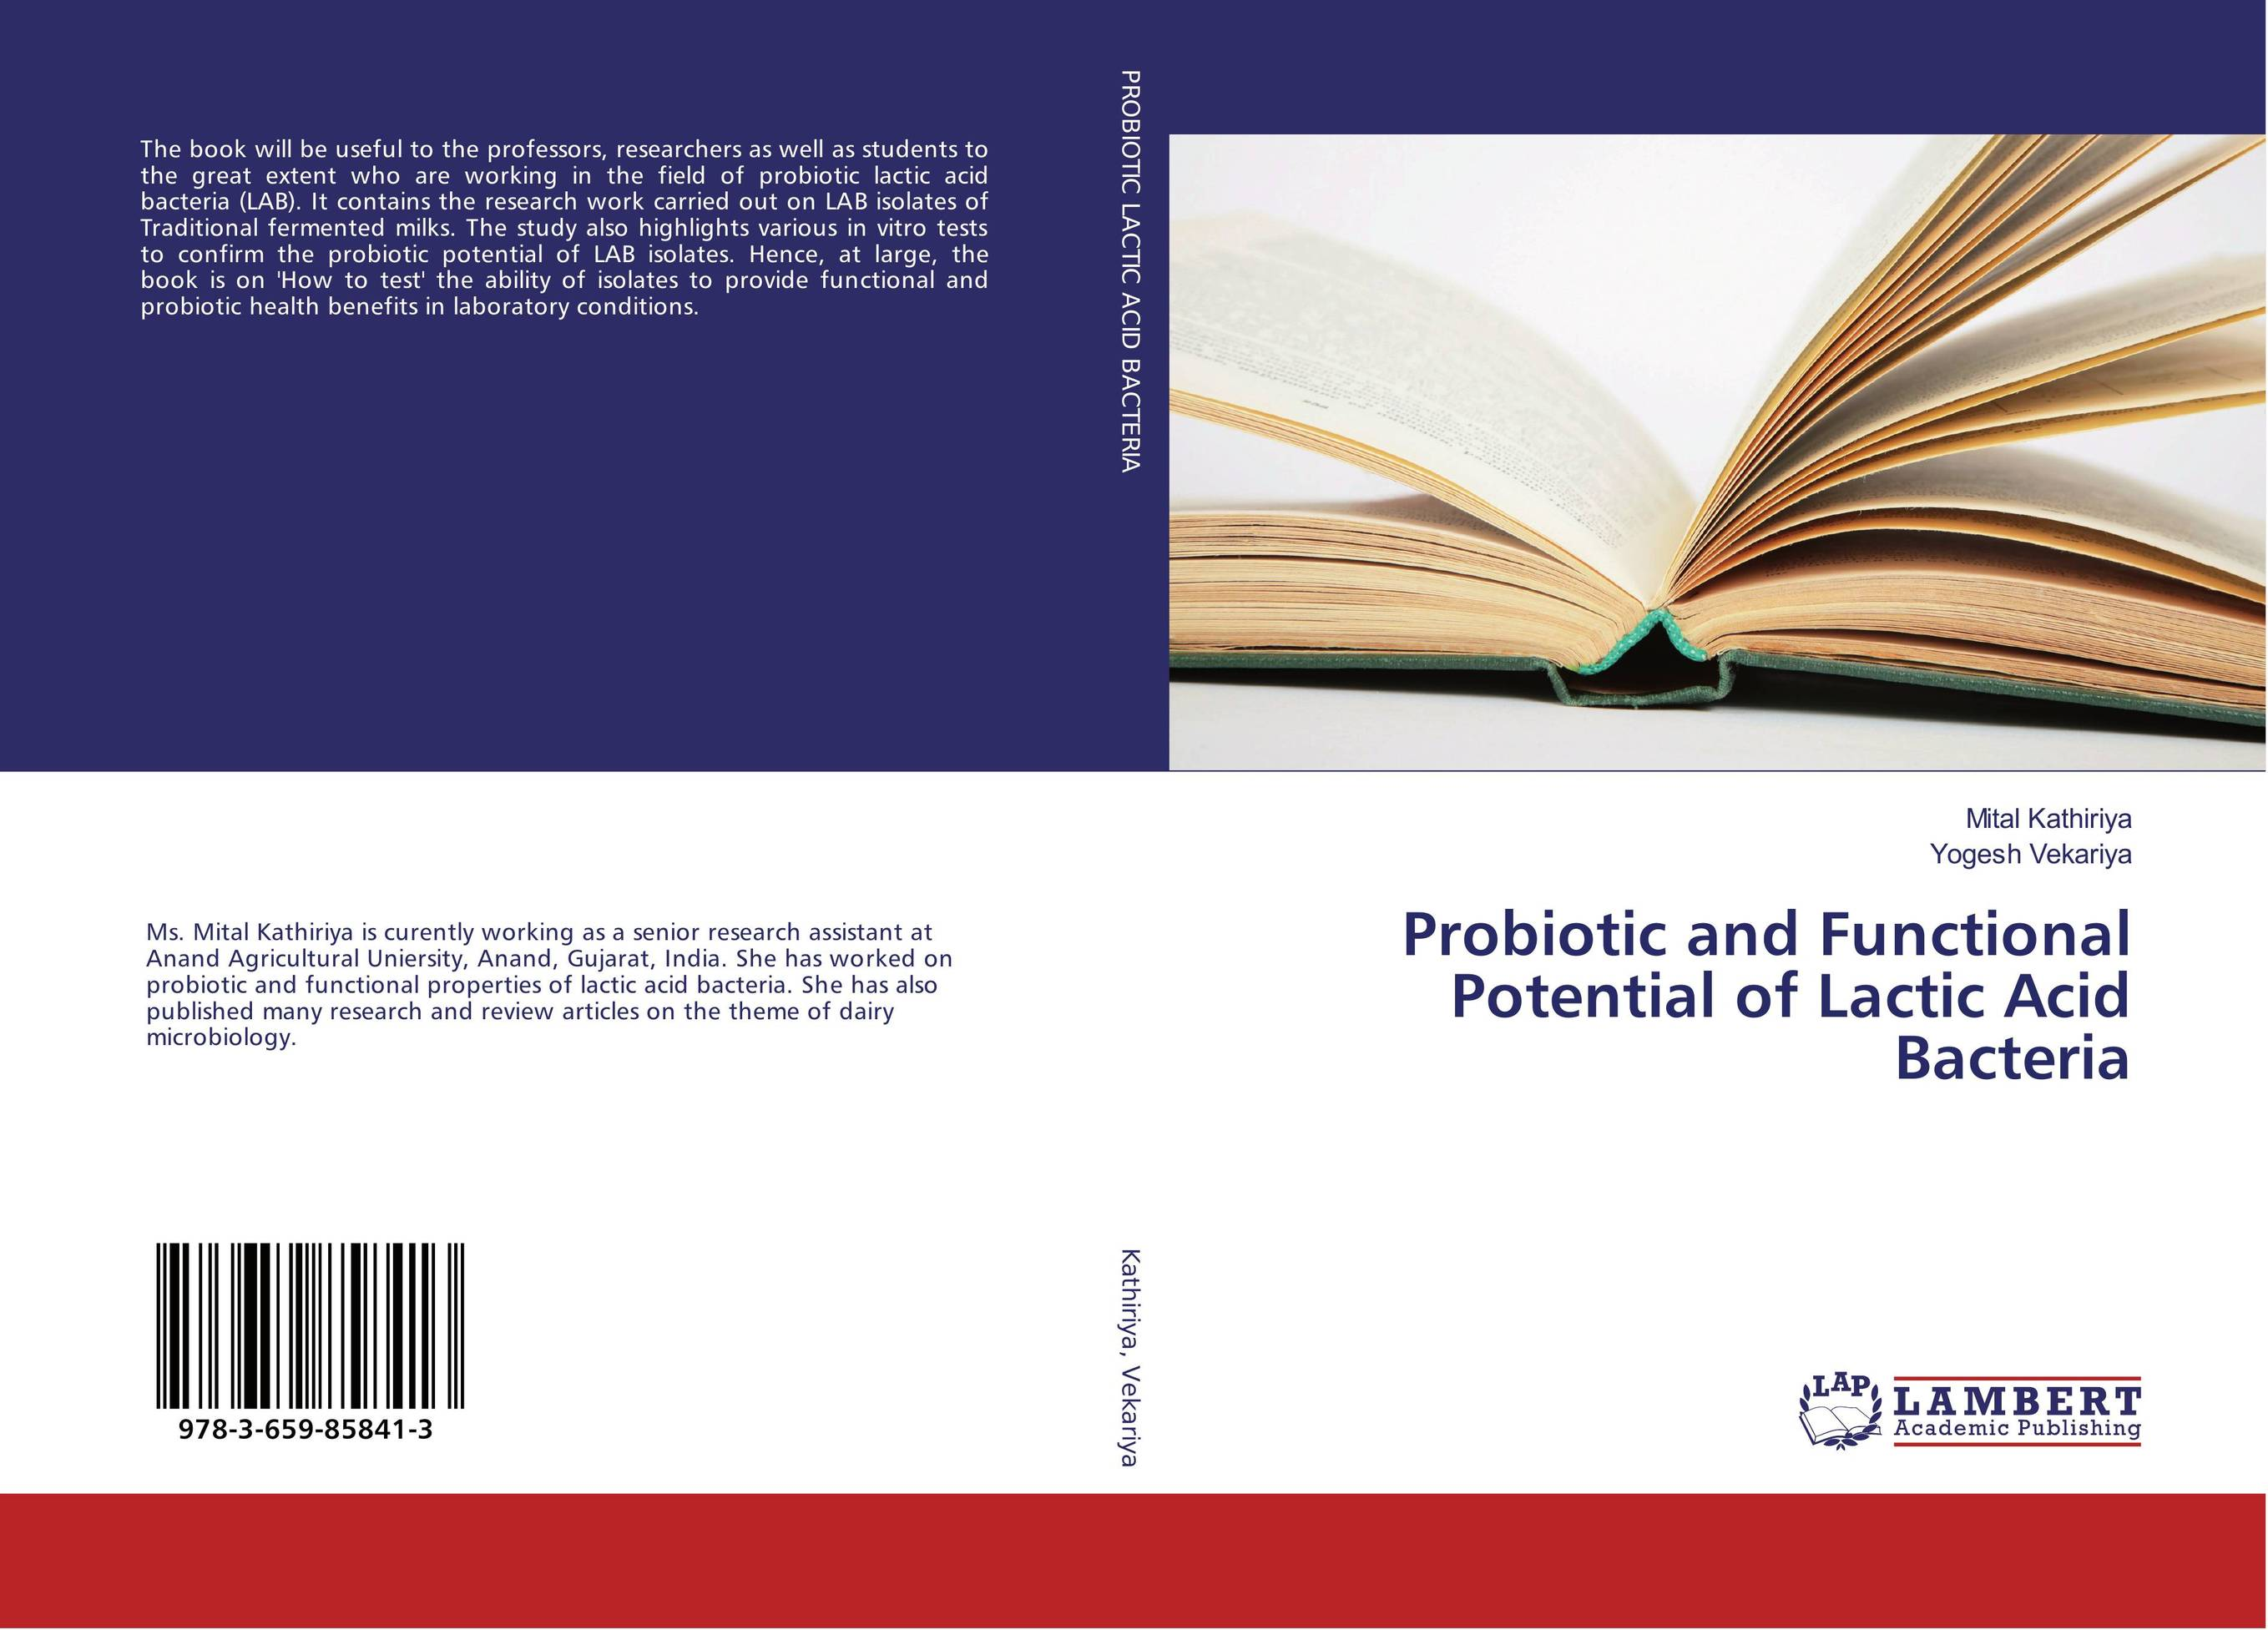 Probiotic and Functional Potential of Lactic Acid Bacteria epidemiological study on the functional gastrointestinal disorders